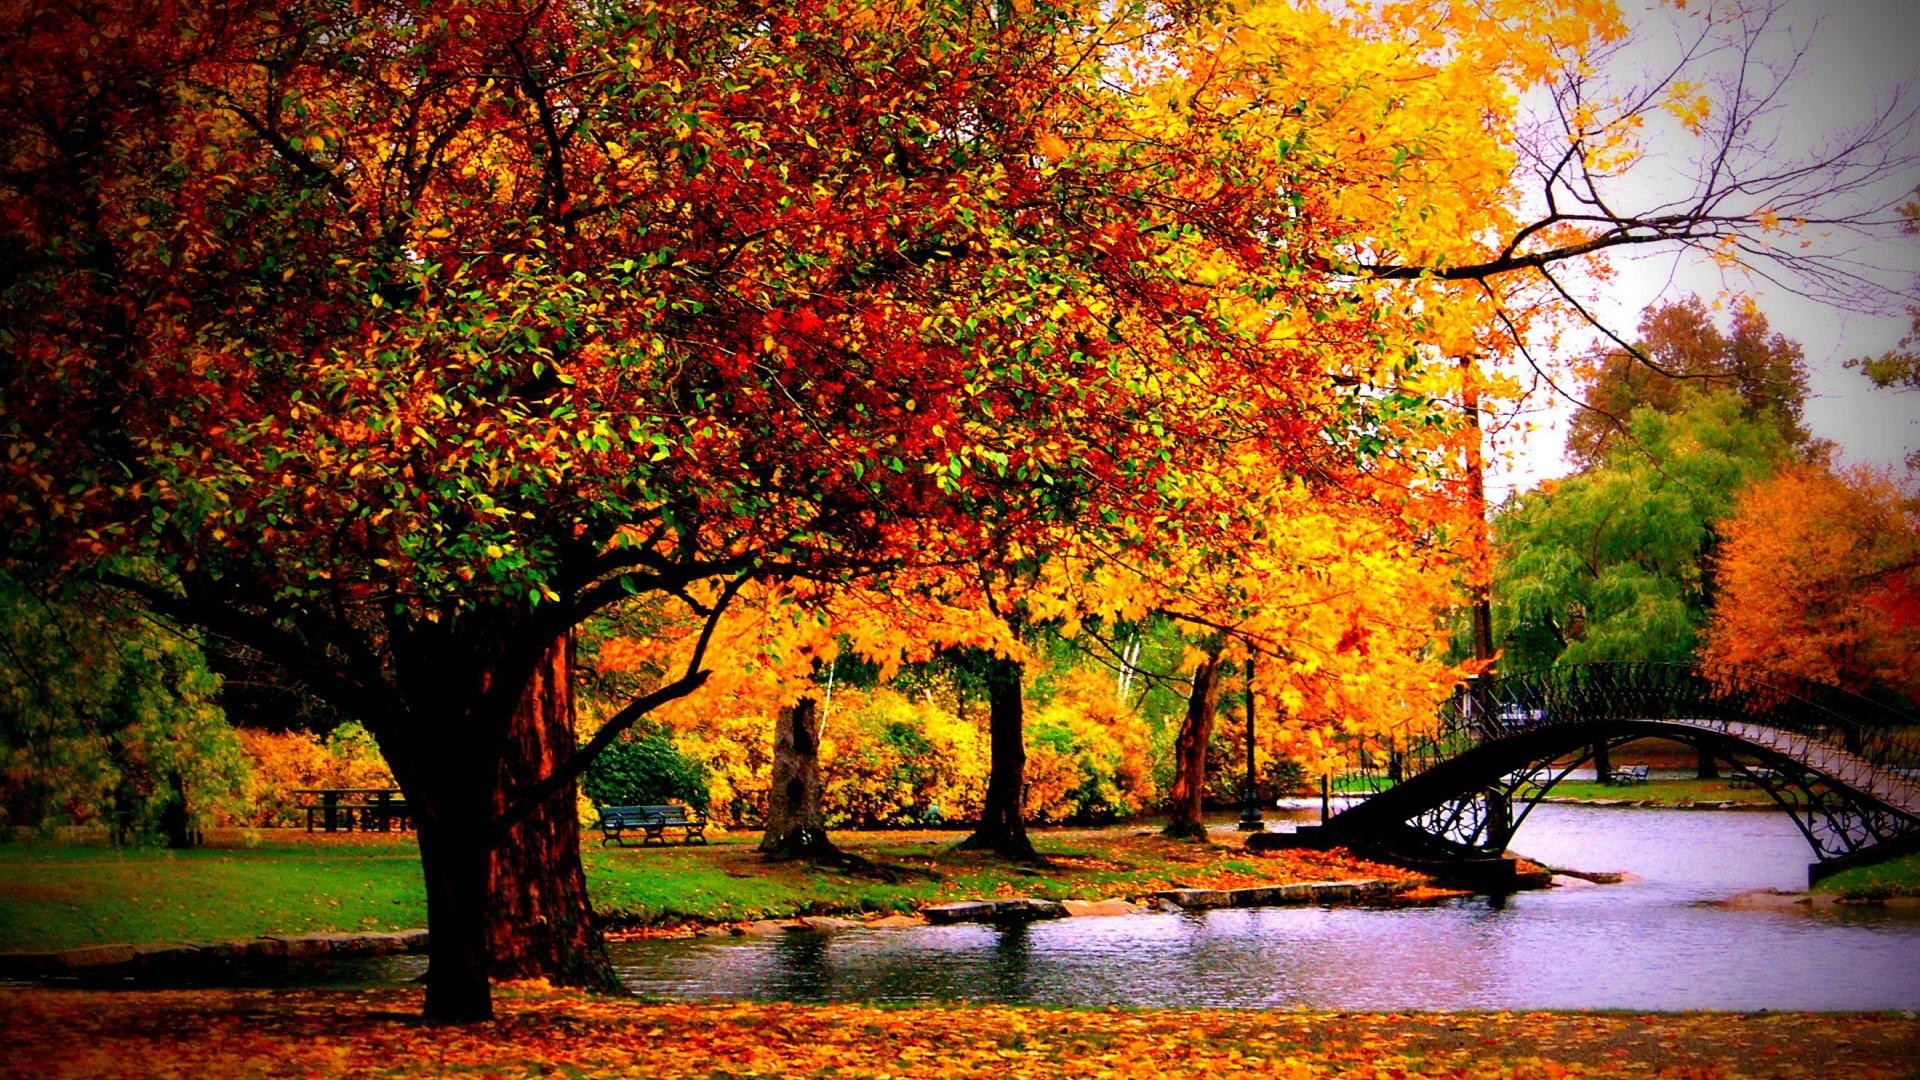 Fall computer wallpaper backgrounds 64 images - Nature wallpaper collection zip ...